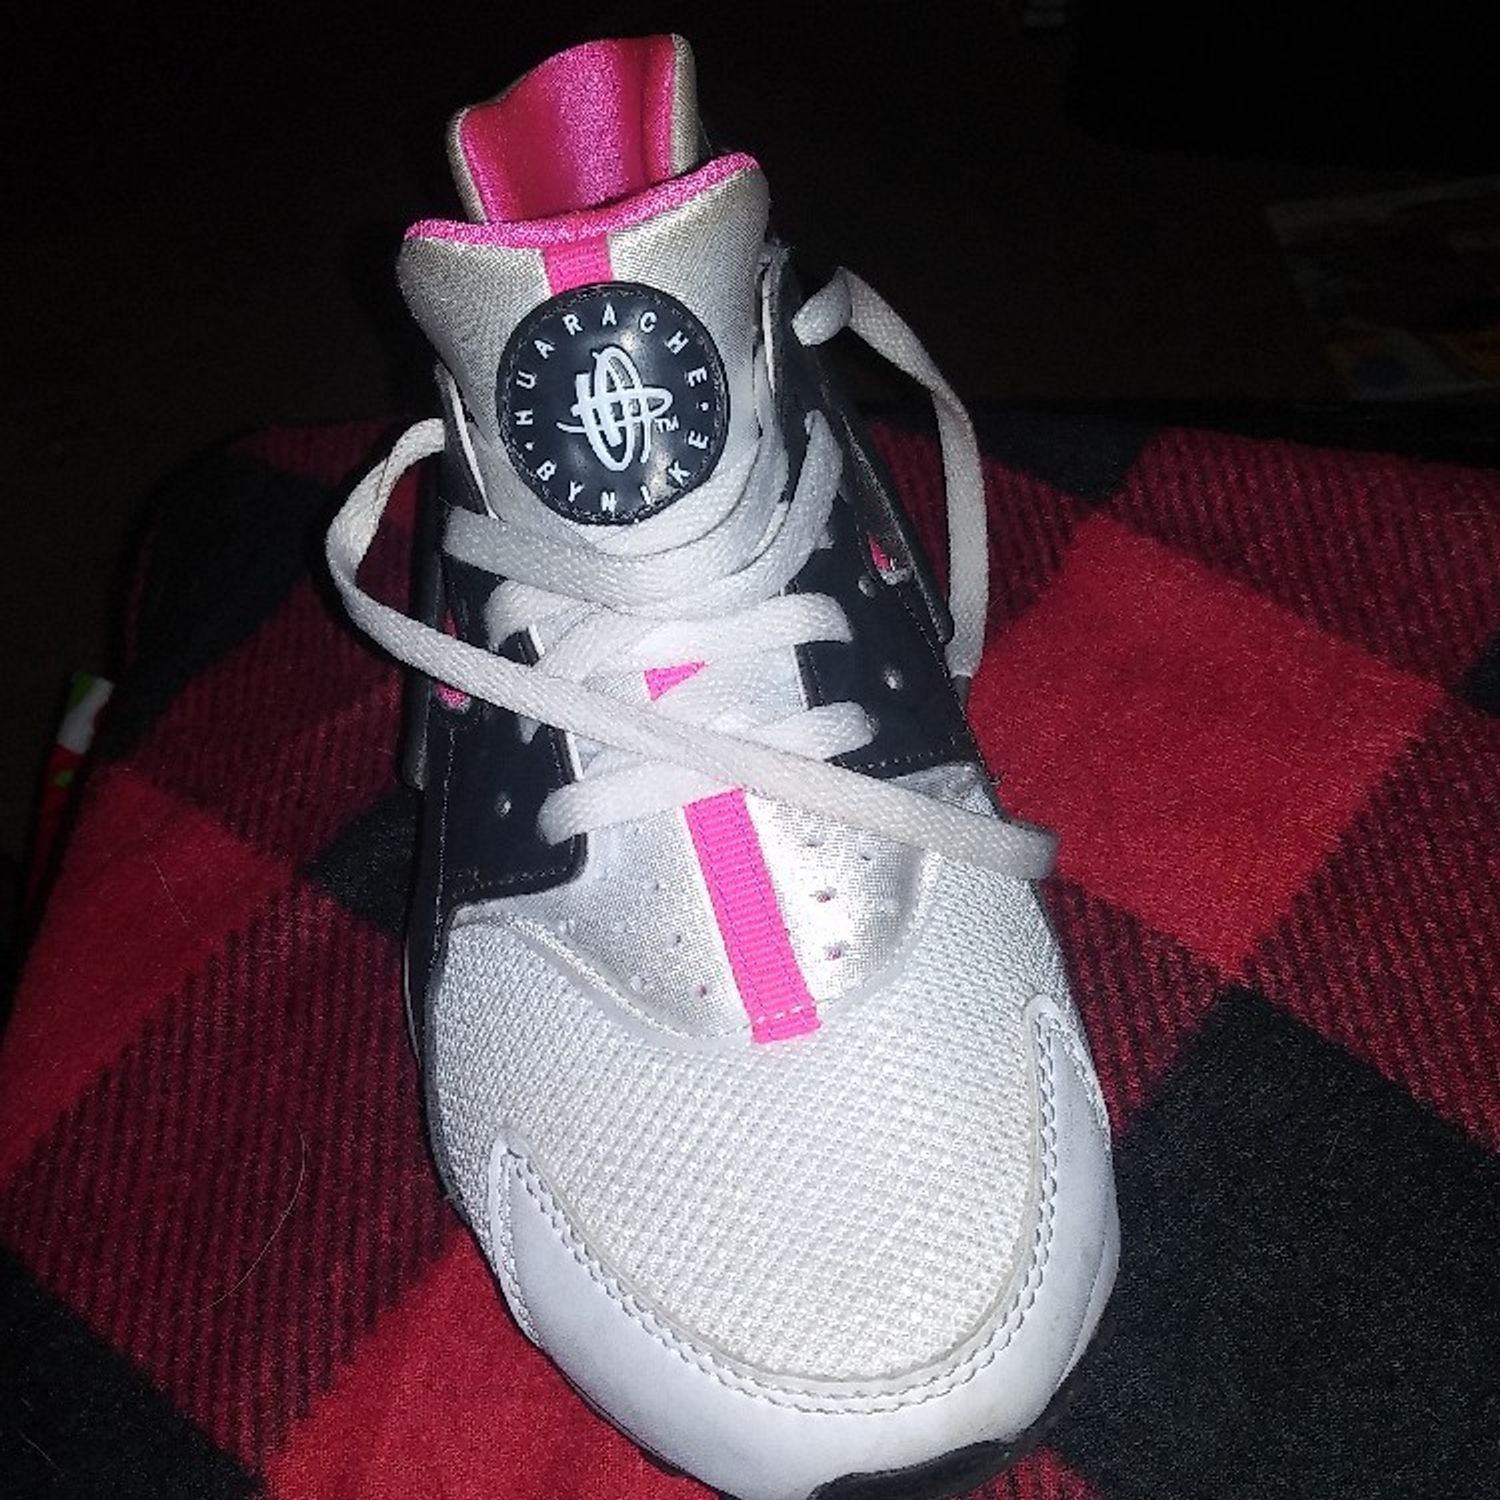 marcador Hablar aspecto  Nike Air Huarache Girls Running Shoes Size 5.5 White/Black/Pink!